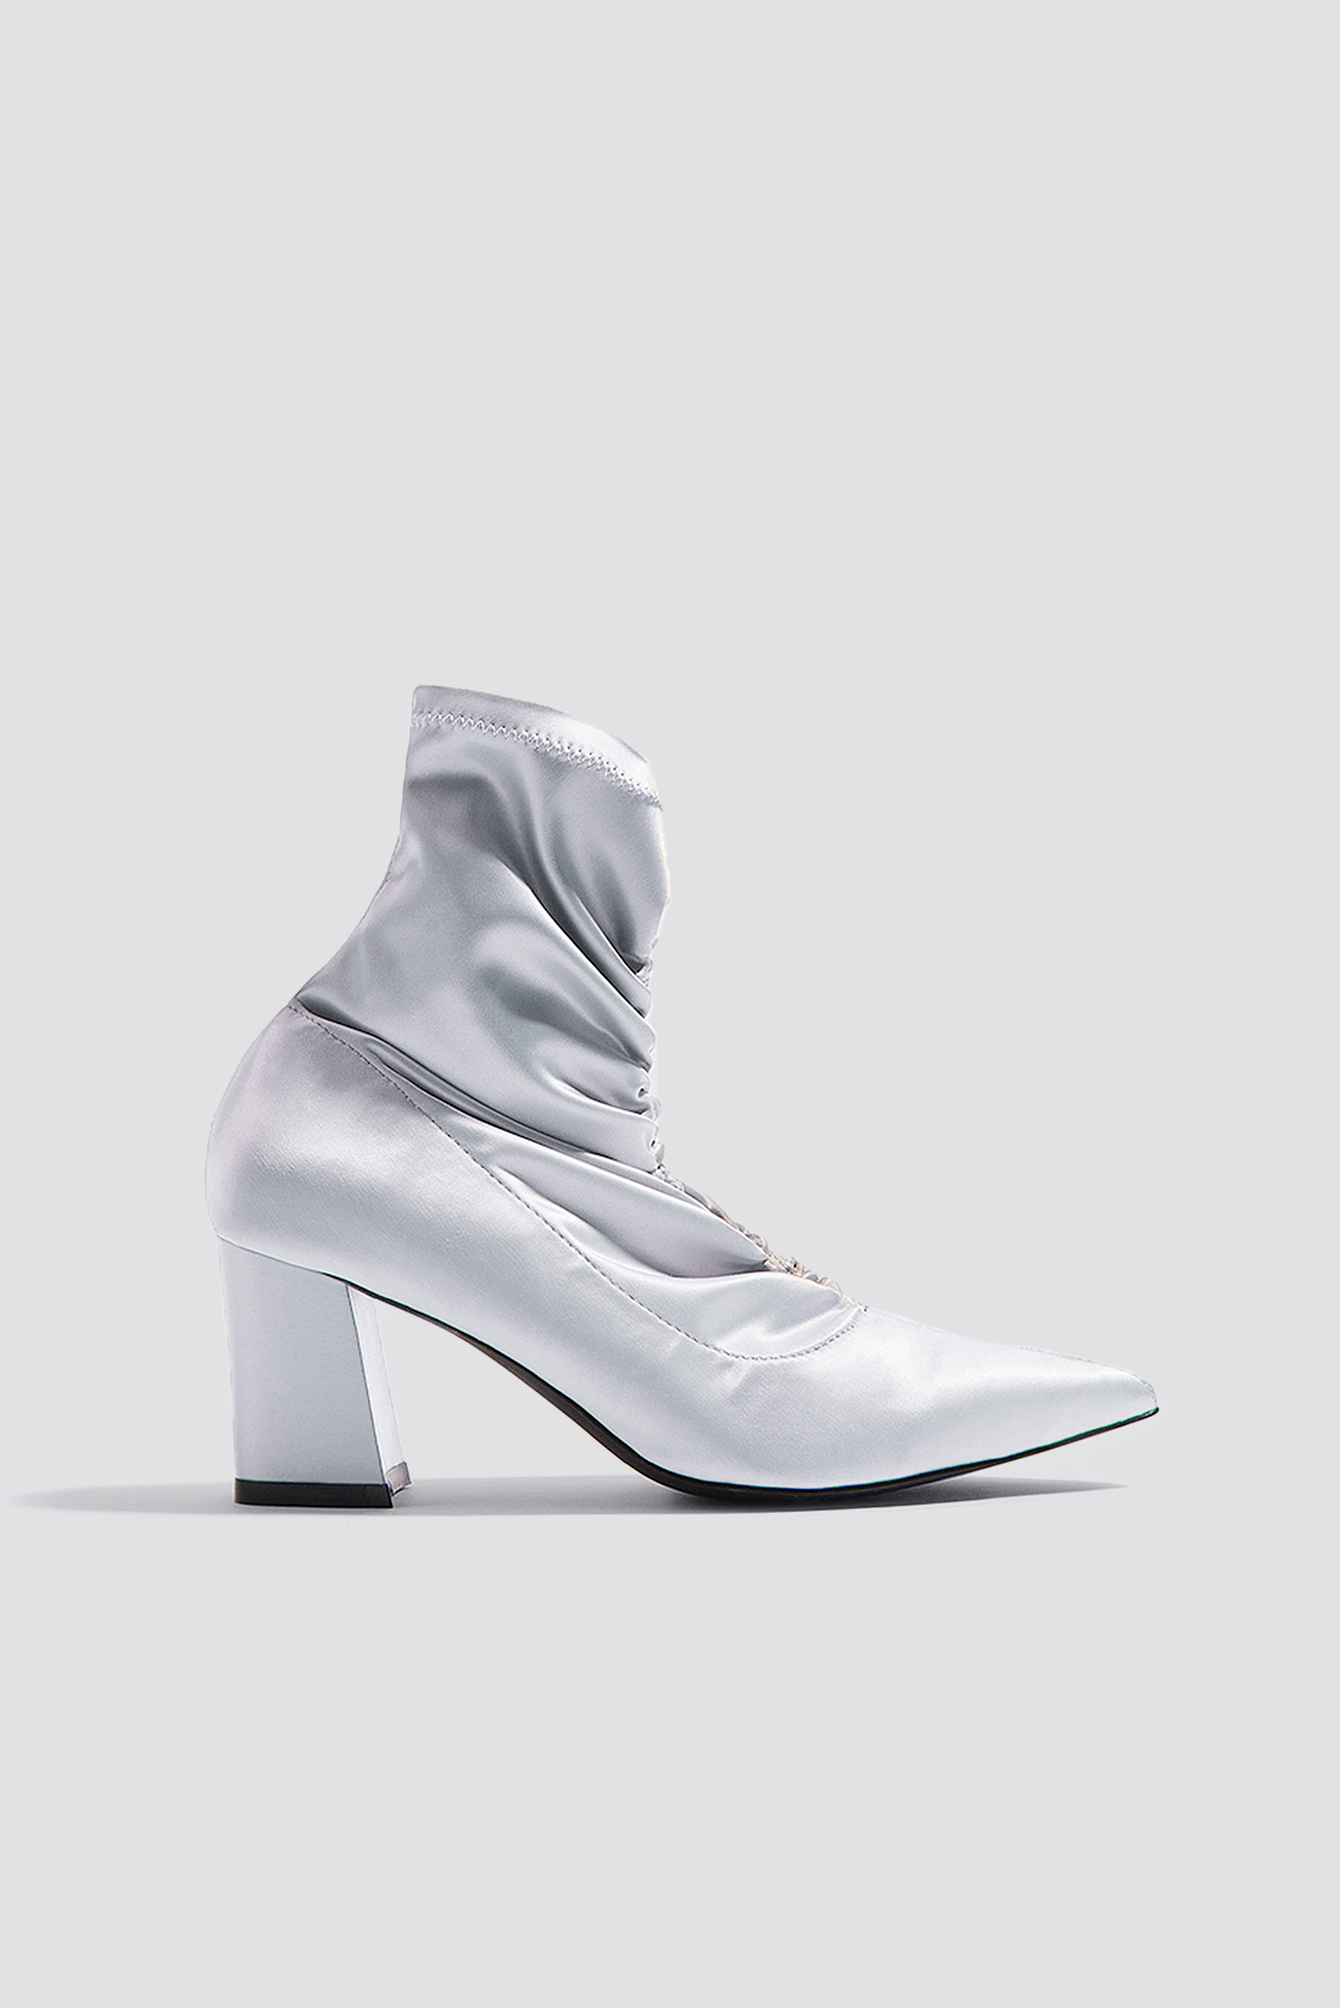 na-kd shoes -  Gathered Front Sock Boots - Grey,Silver